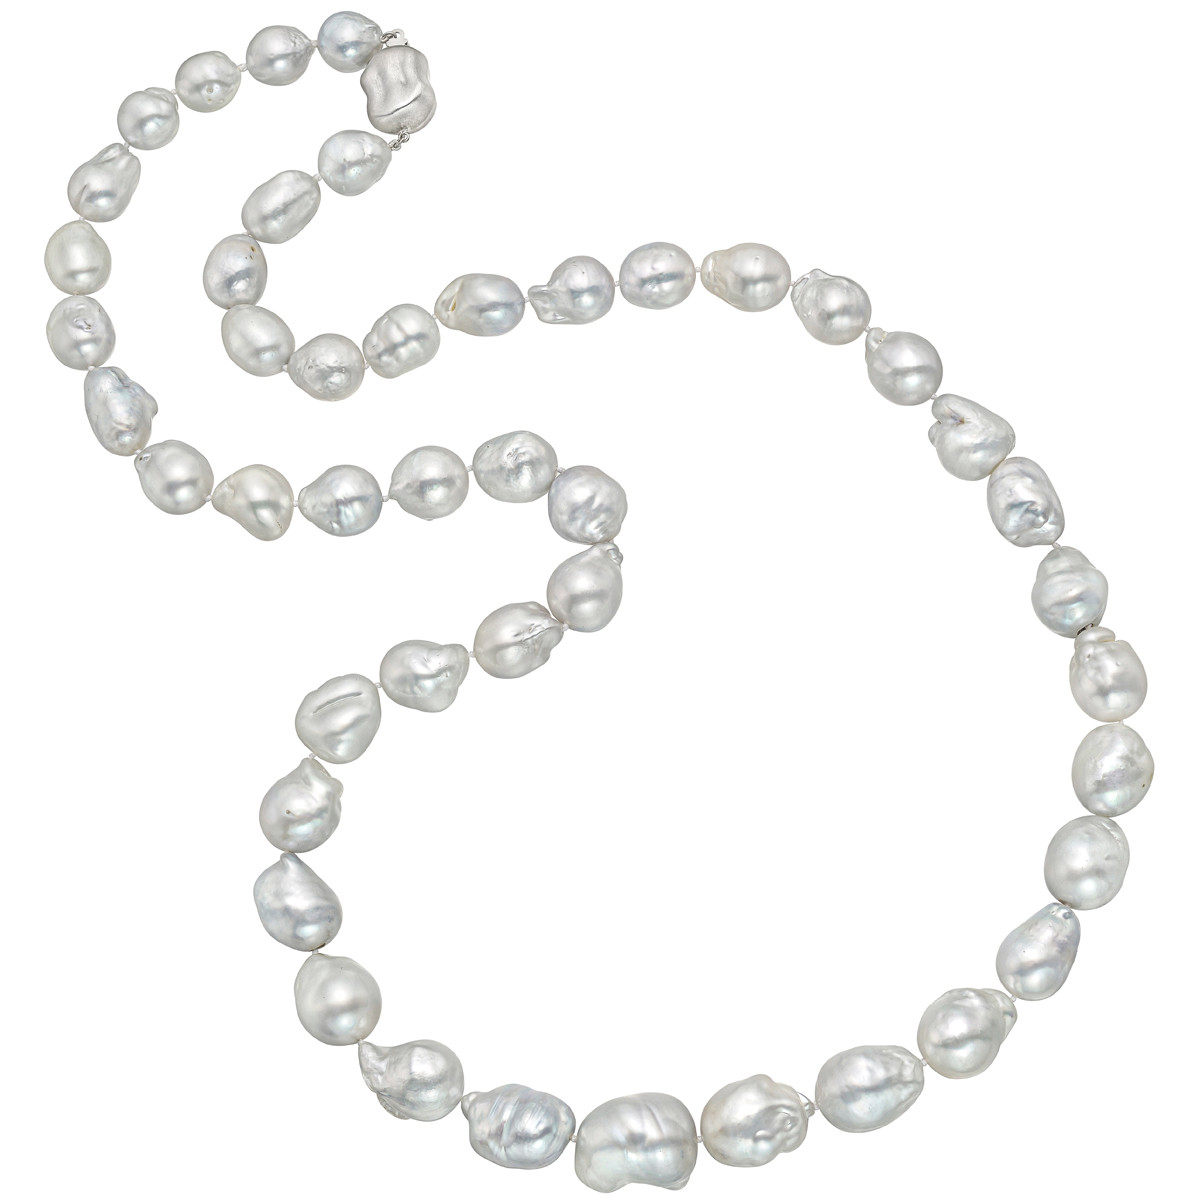 Baroque South Sea Pearl Long Necklace